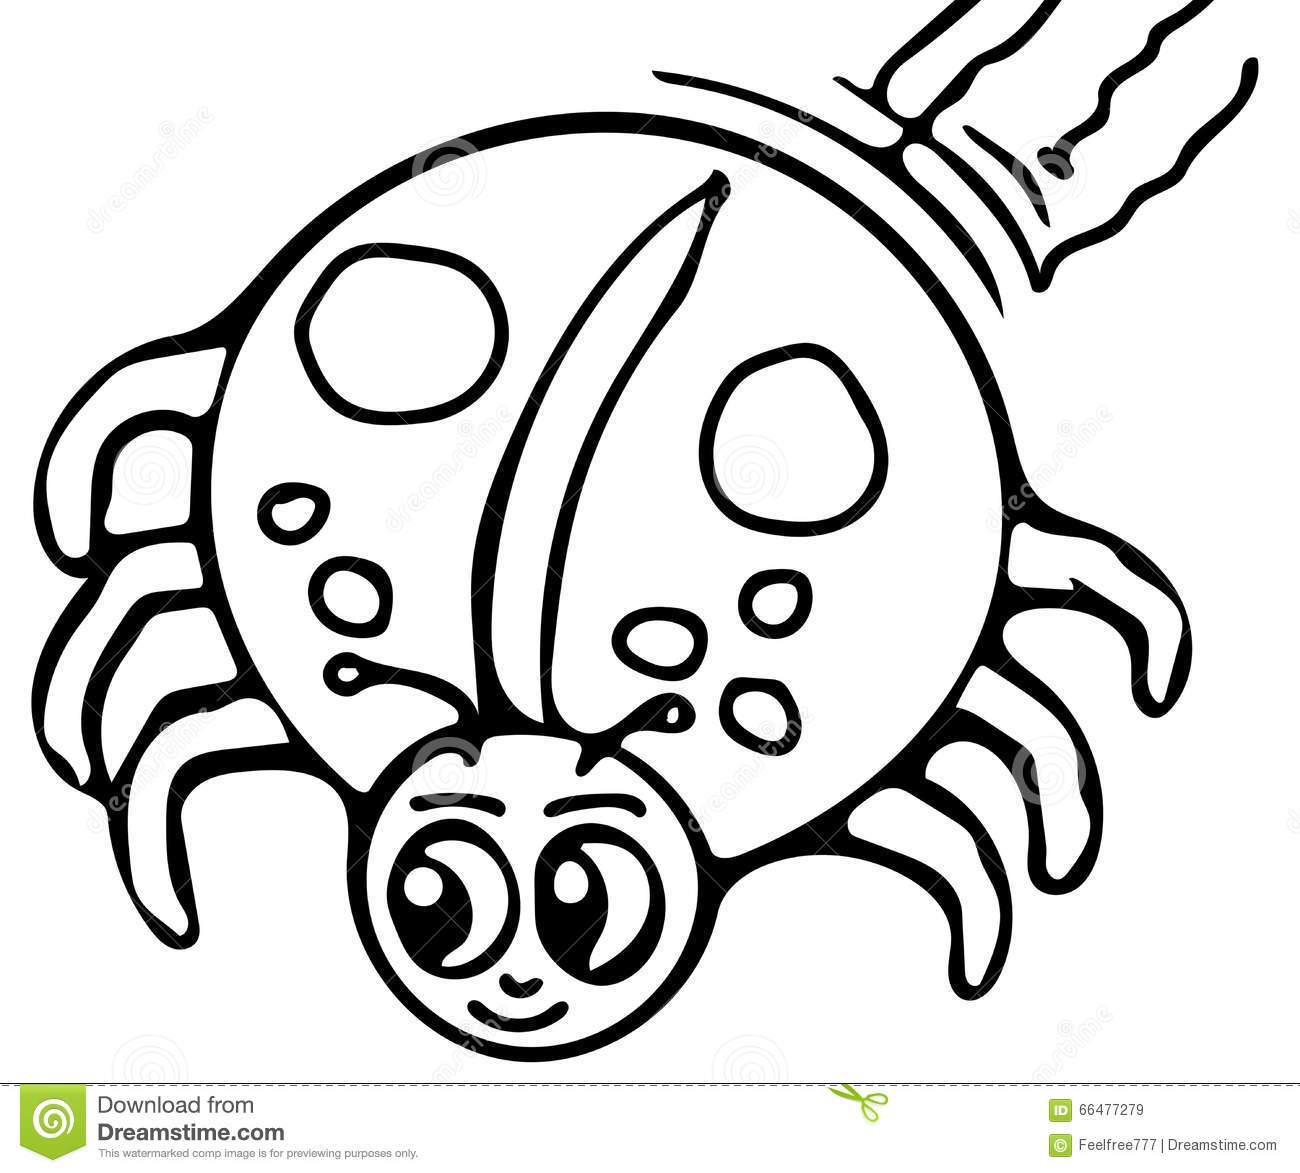 Royalty Free Stock Images: Spider coloring pages. Image